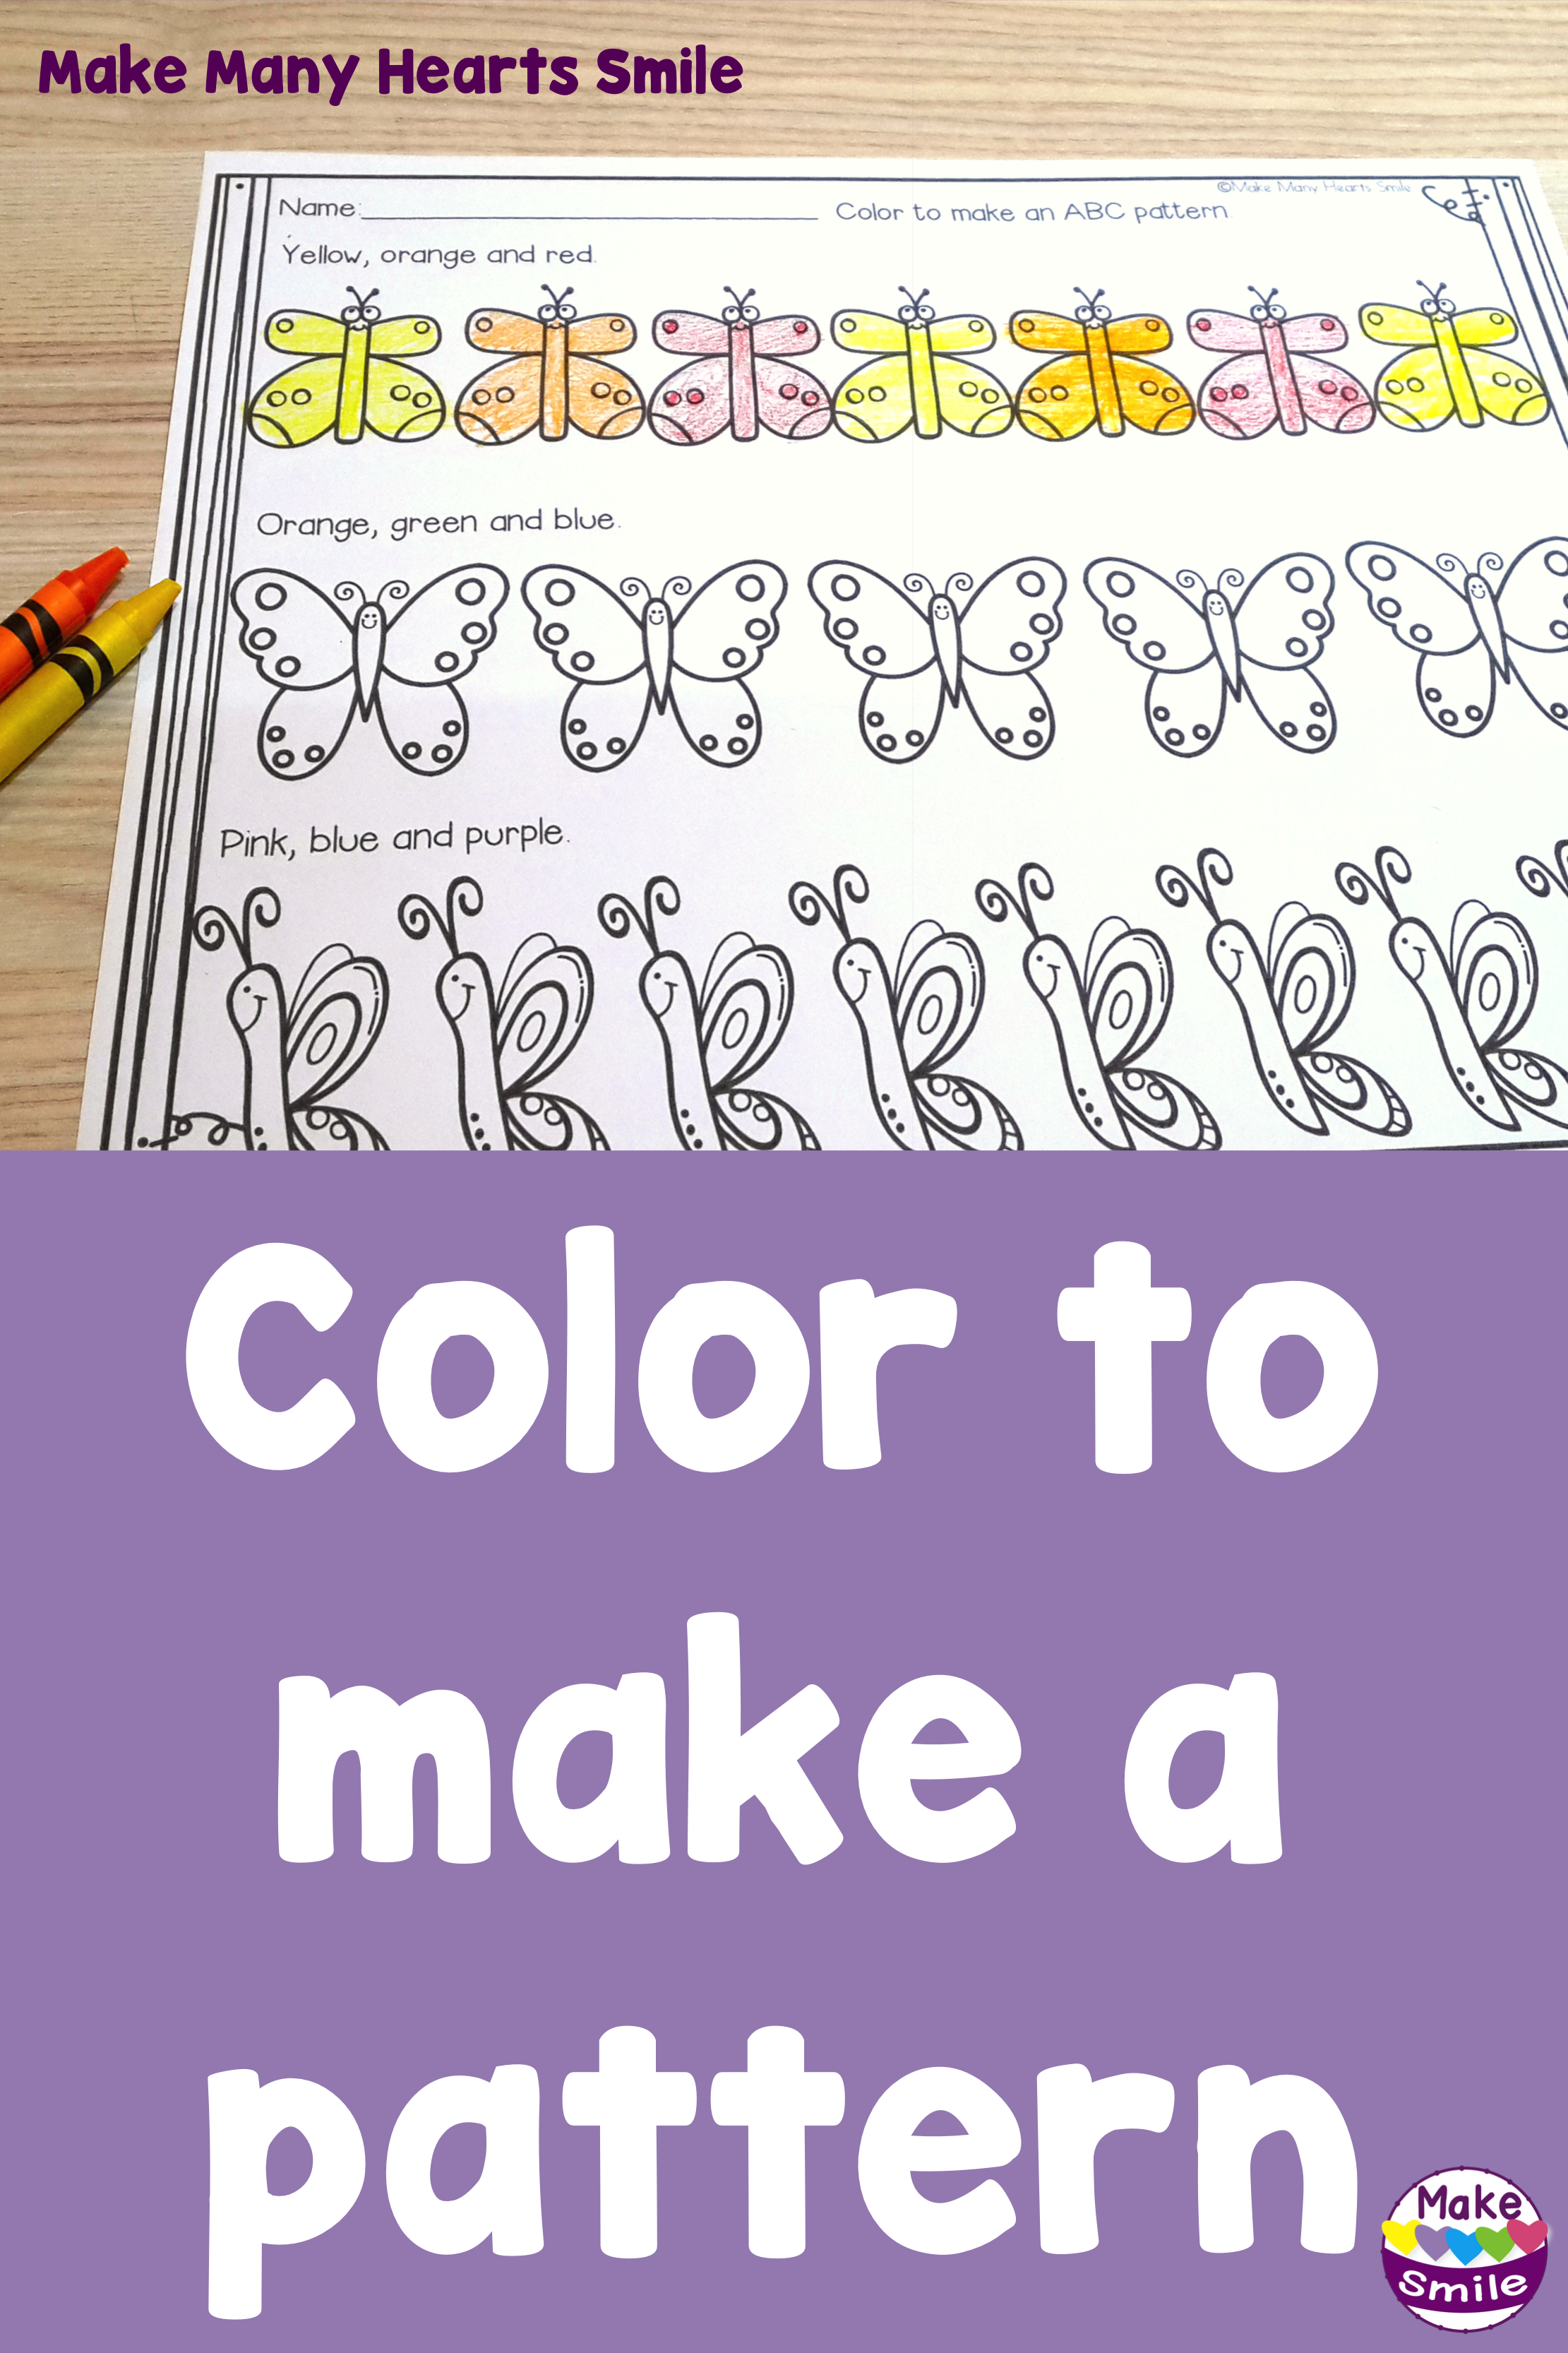 My Kids Had So Much Fun With This Patterns Activity